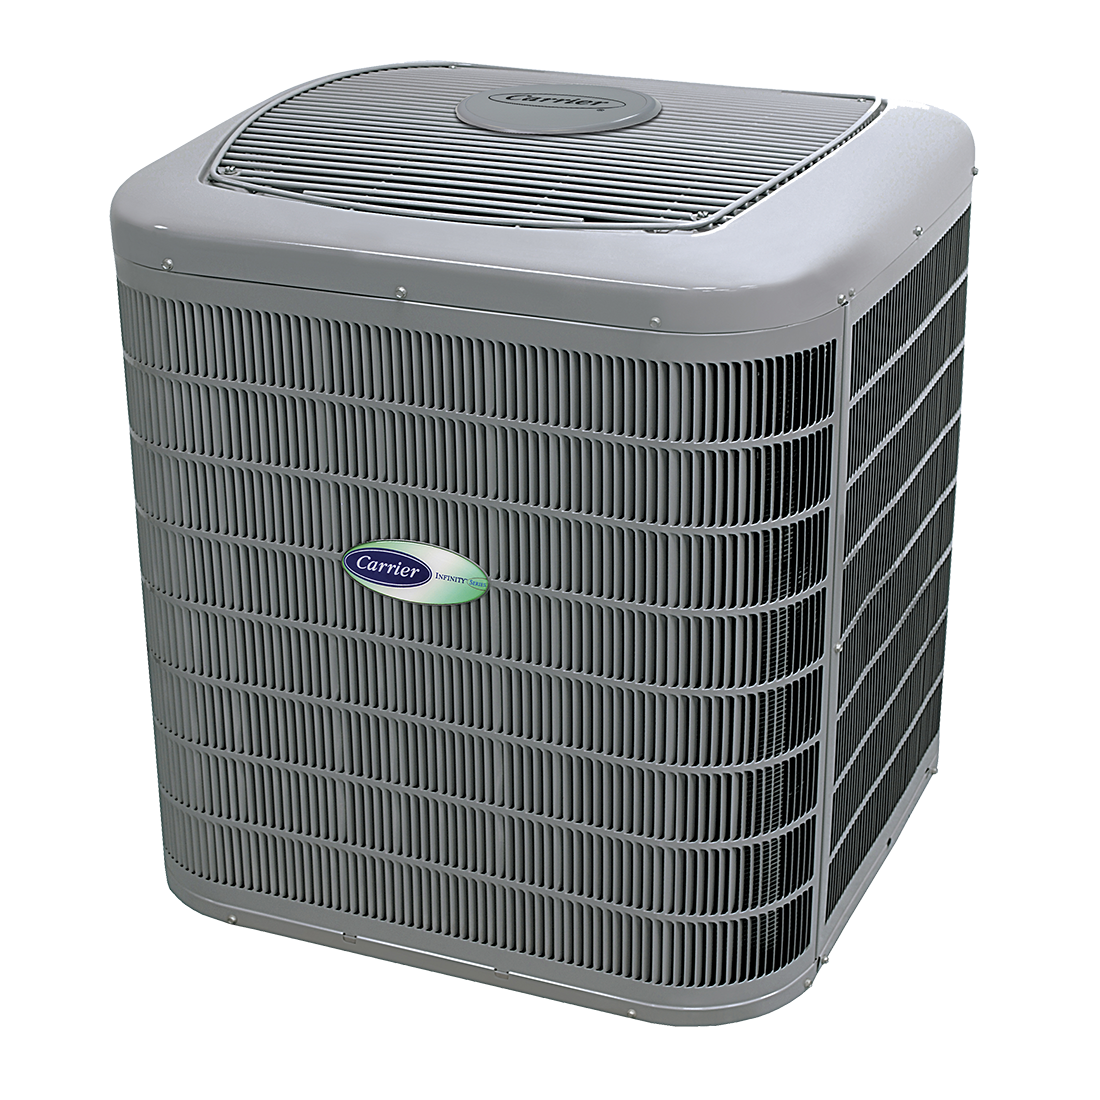 Infinity Series Air Conditioners